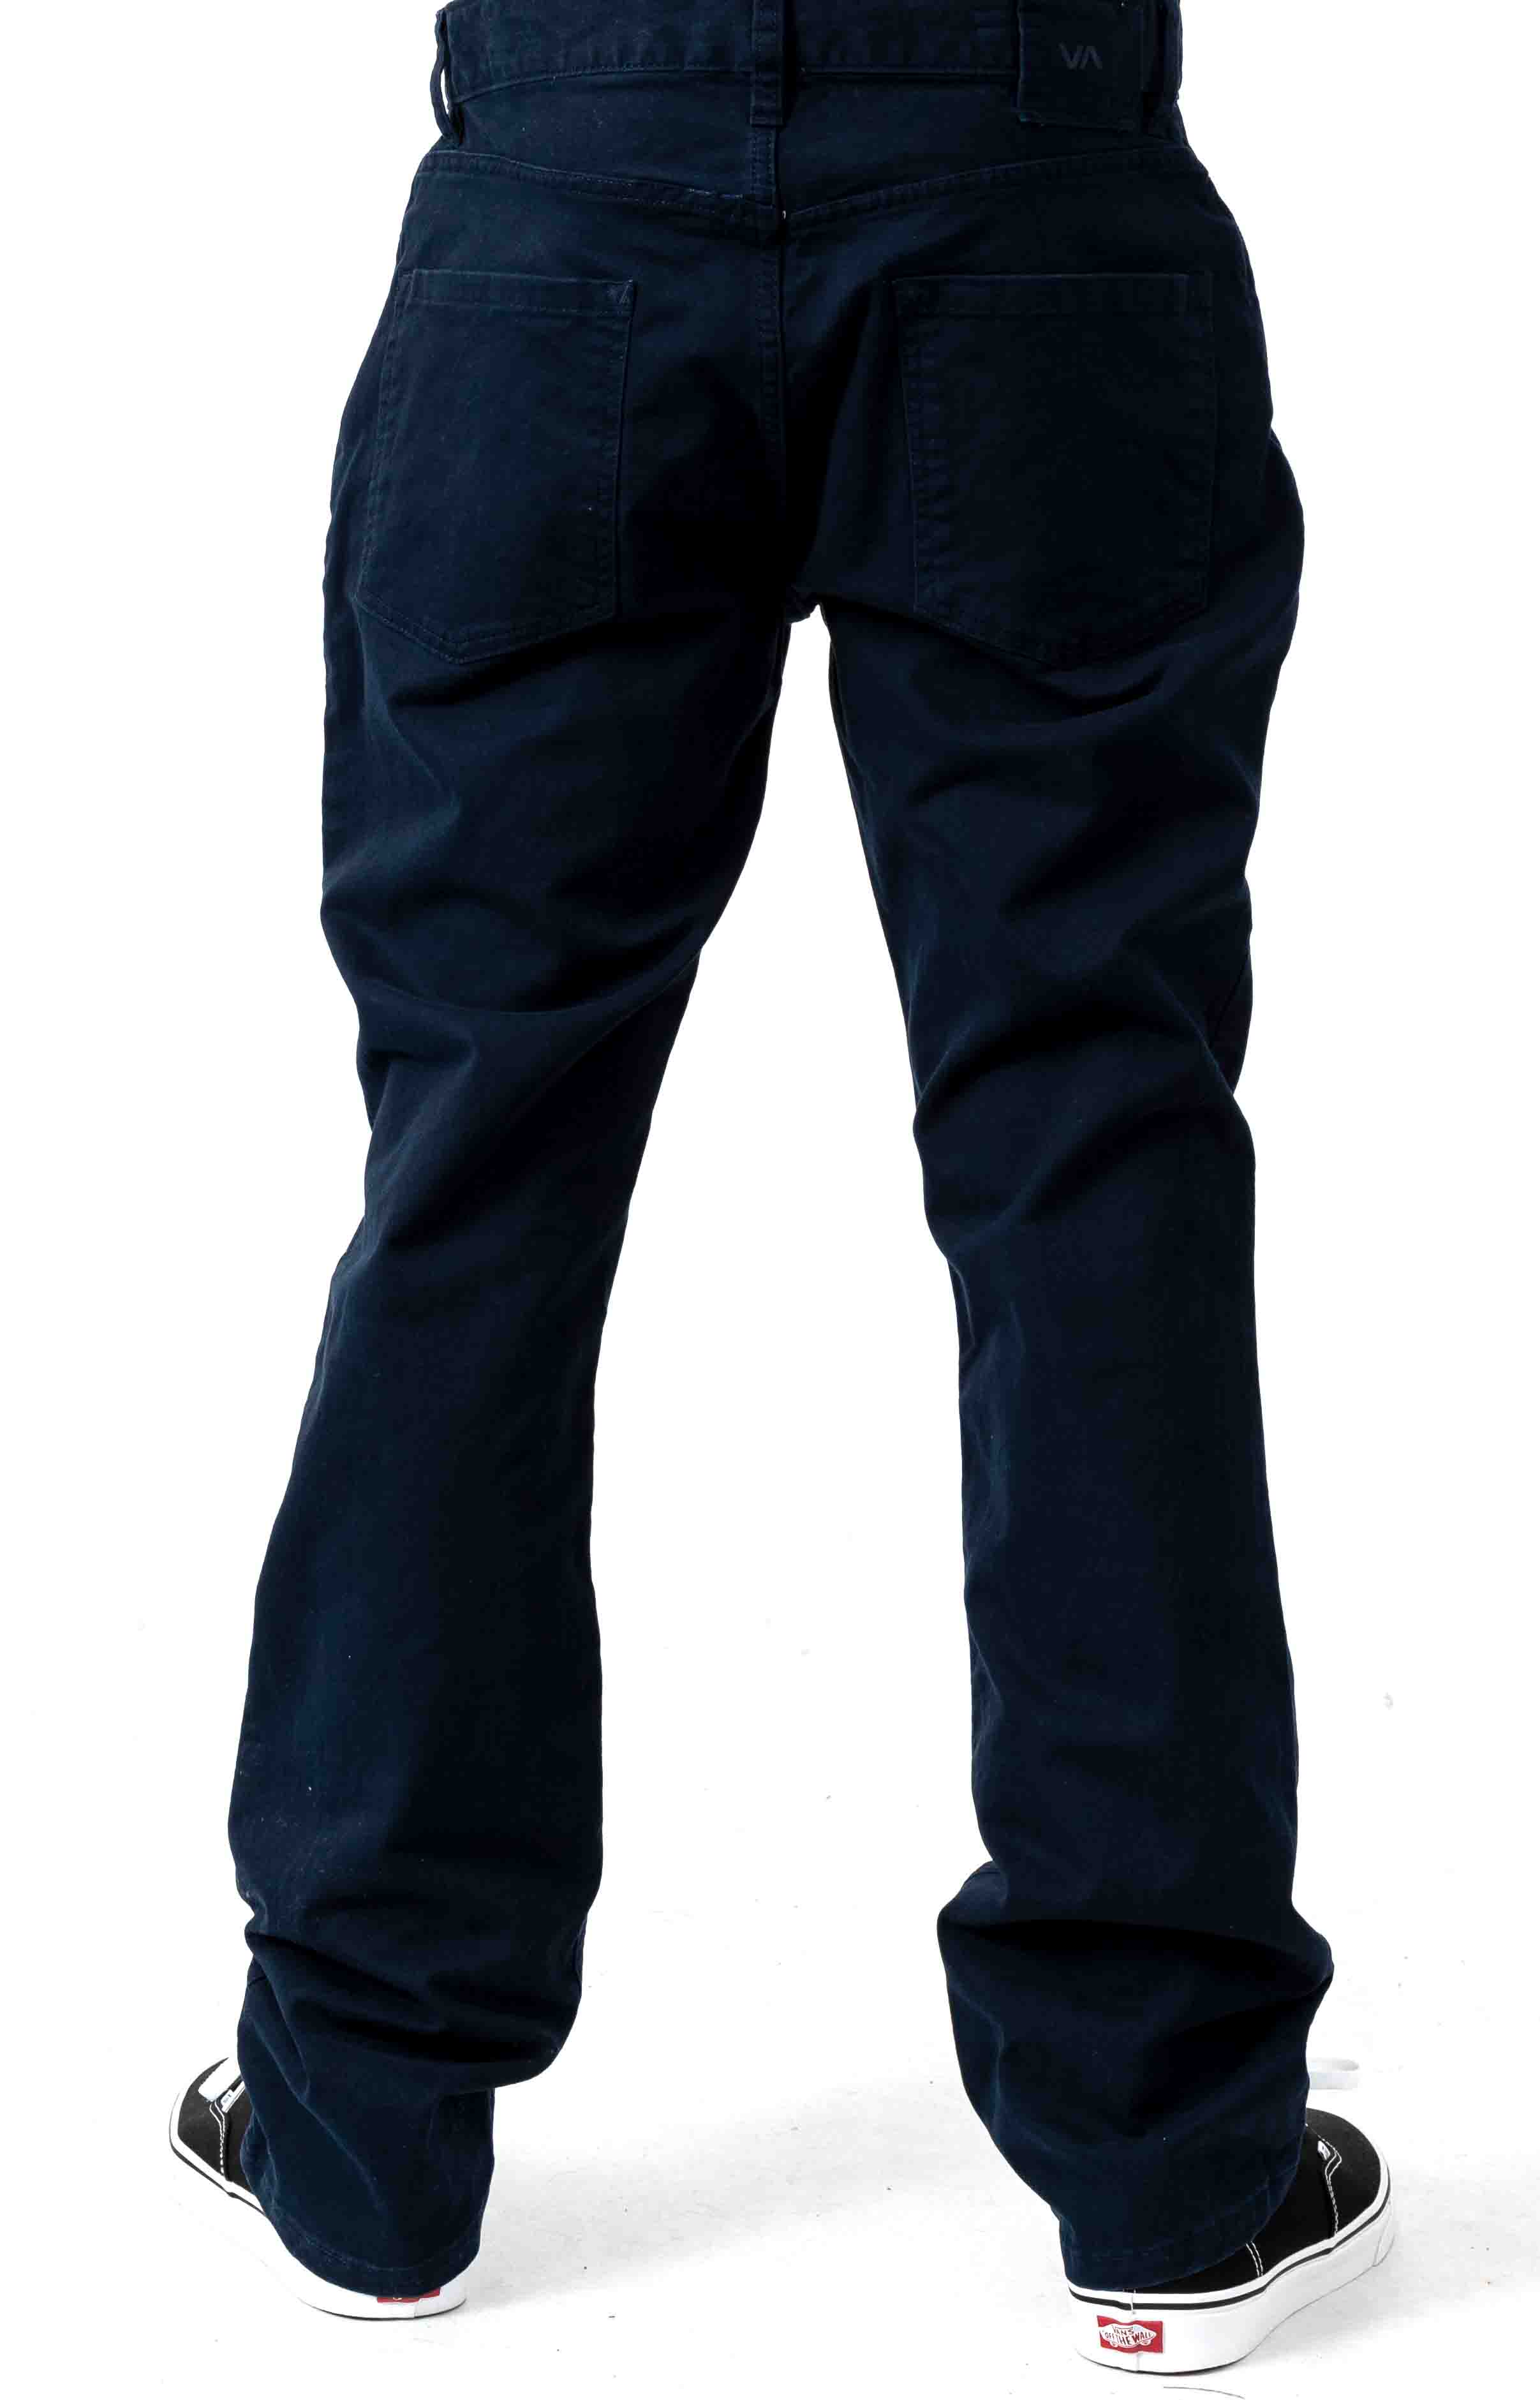 Week-End 5 Pocket Pants - Navy Marine  3